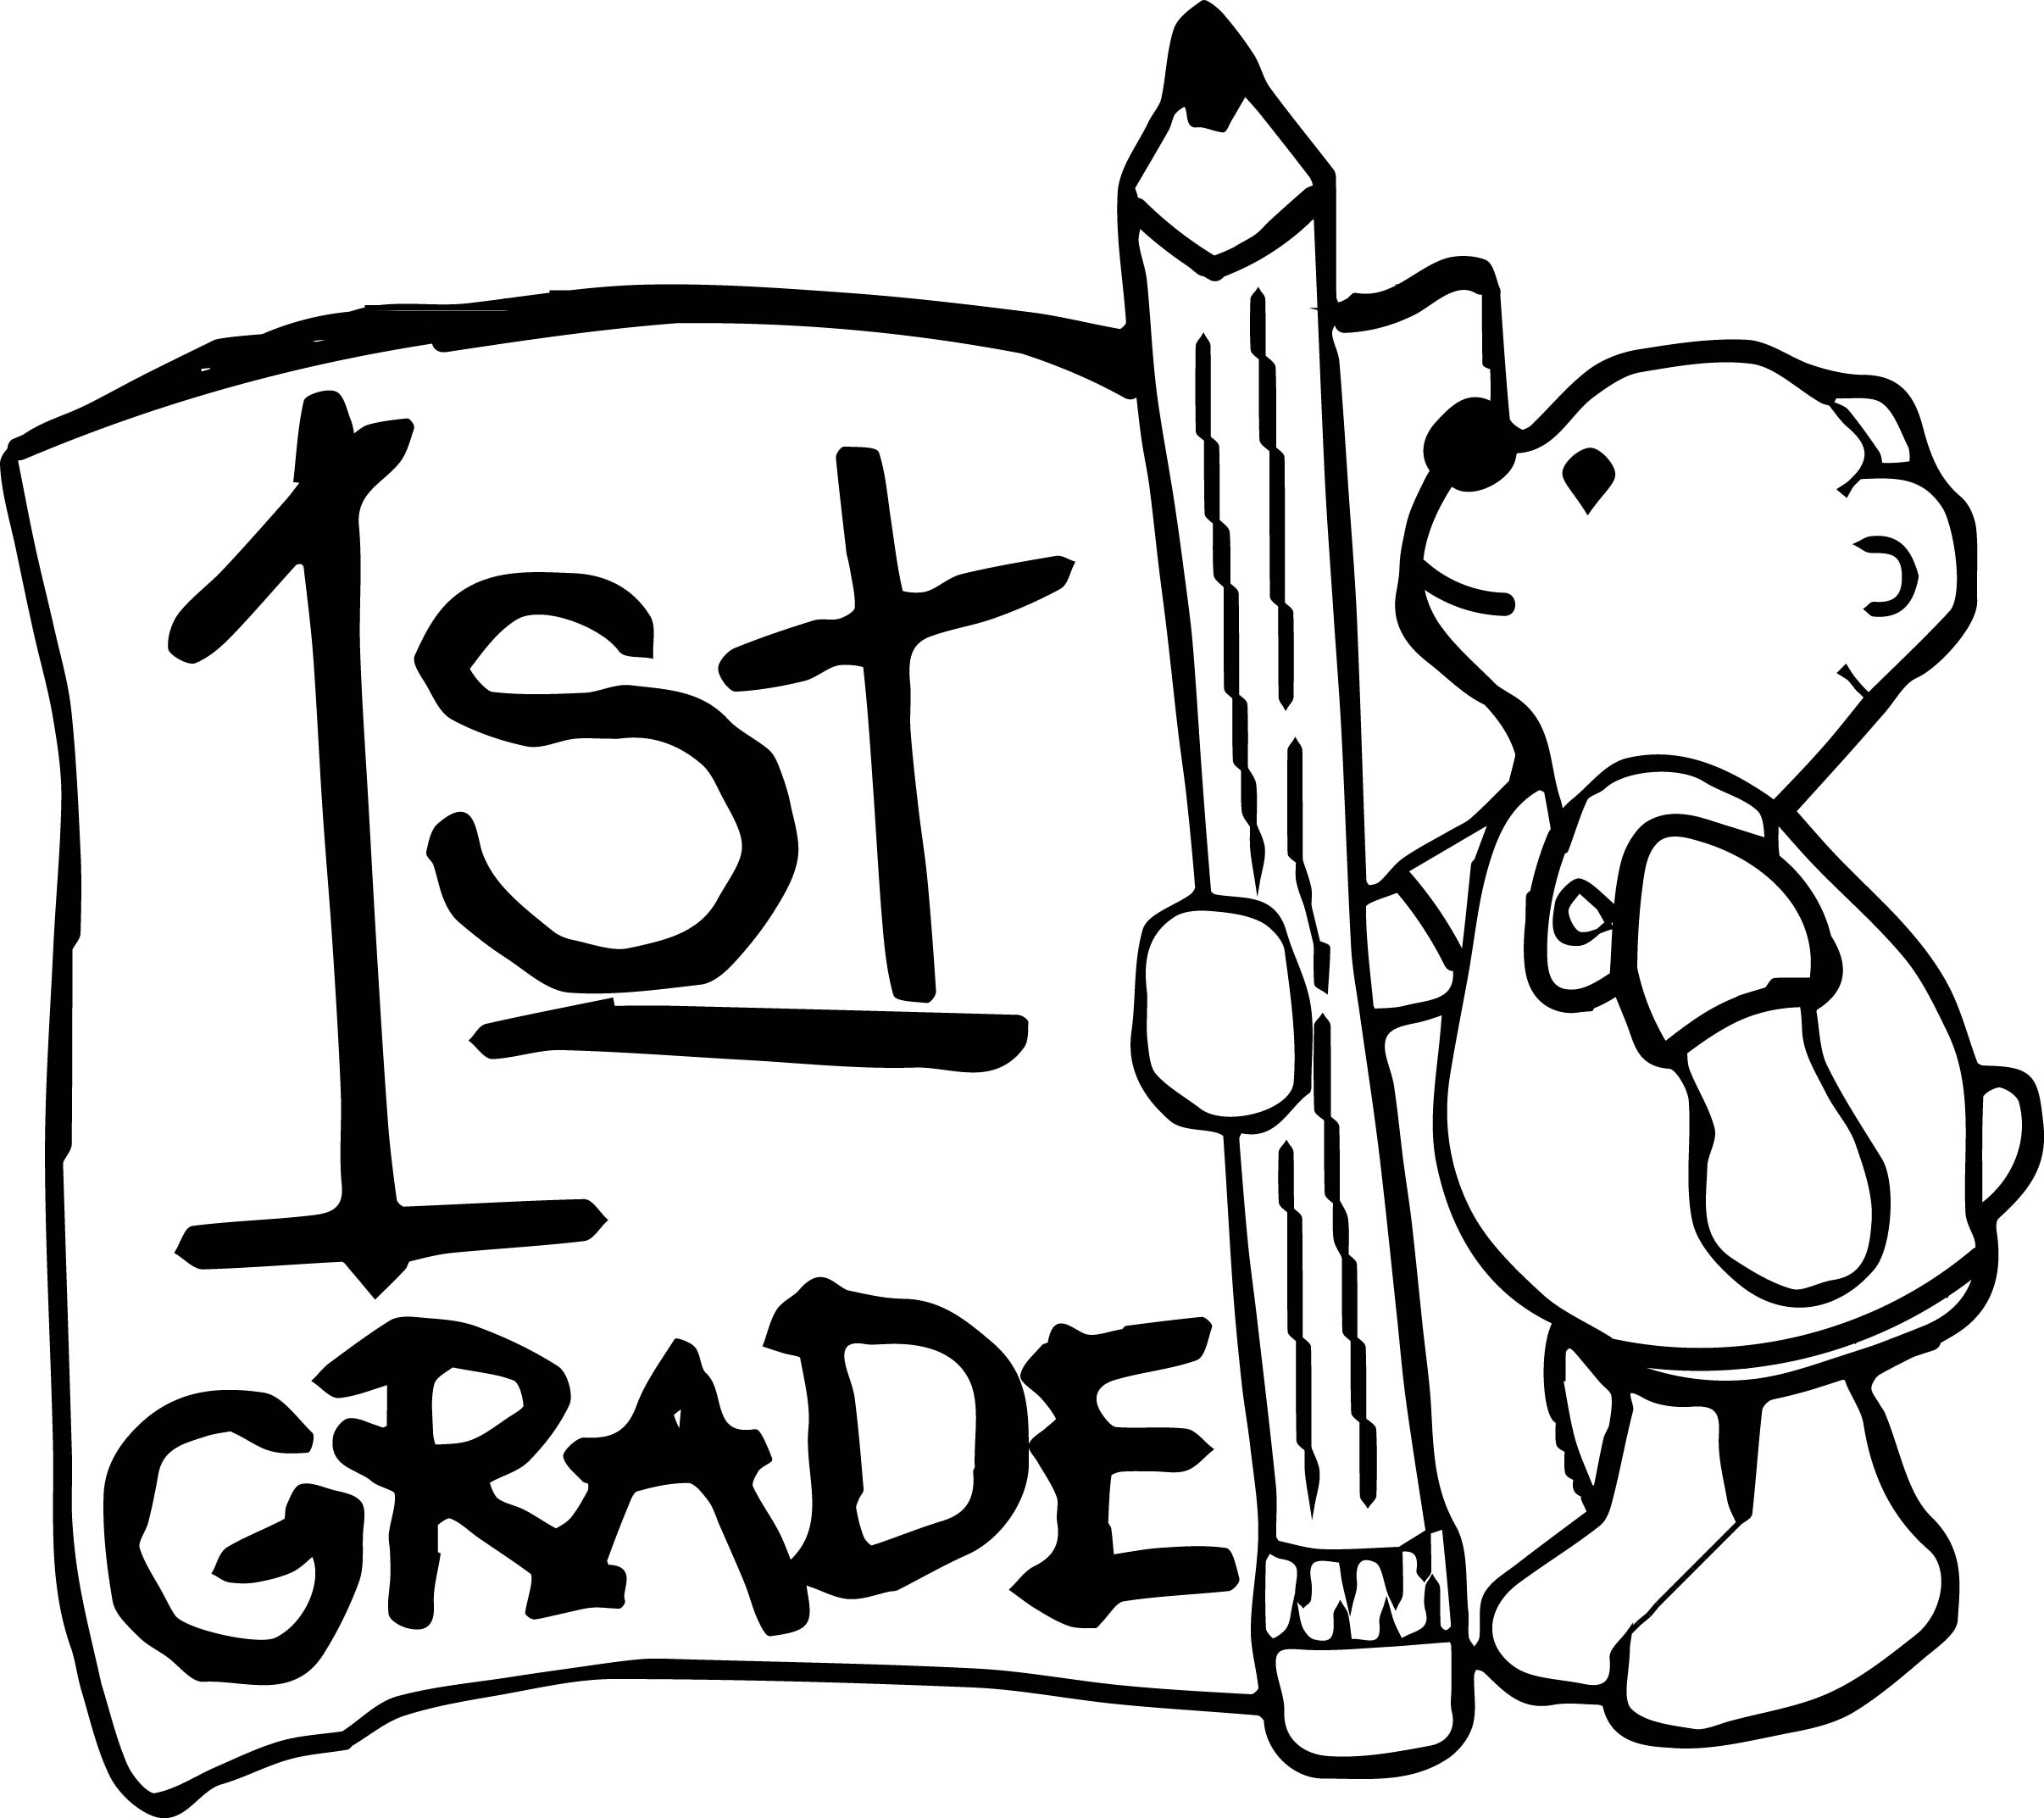 School first grade clipart black and white free jpg freeuse stock First Grade Clipart Black And White jpg freeuse stock